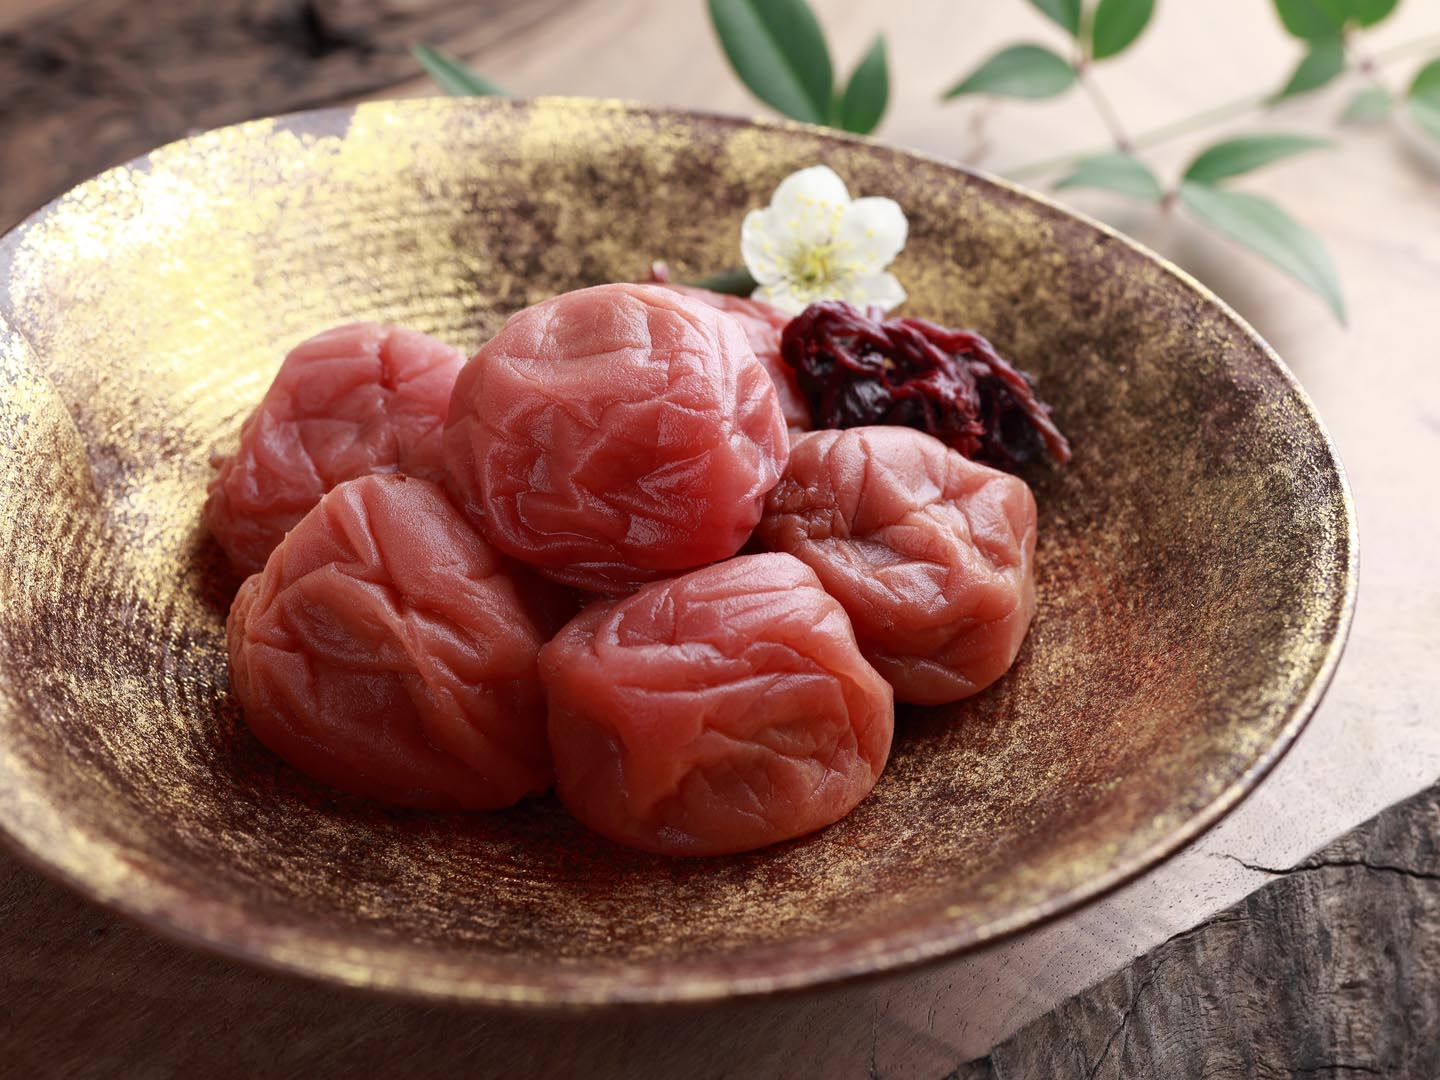 Umeboshi: Japanese Health Food? - Ask Dr. Weil